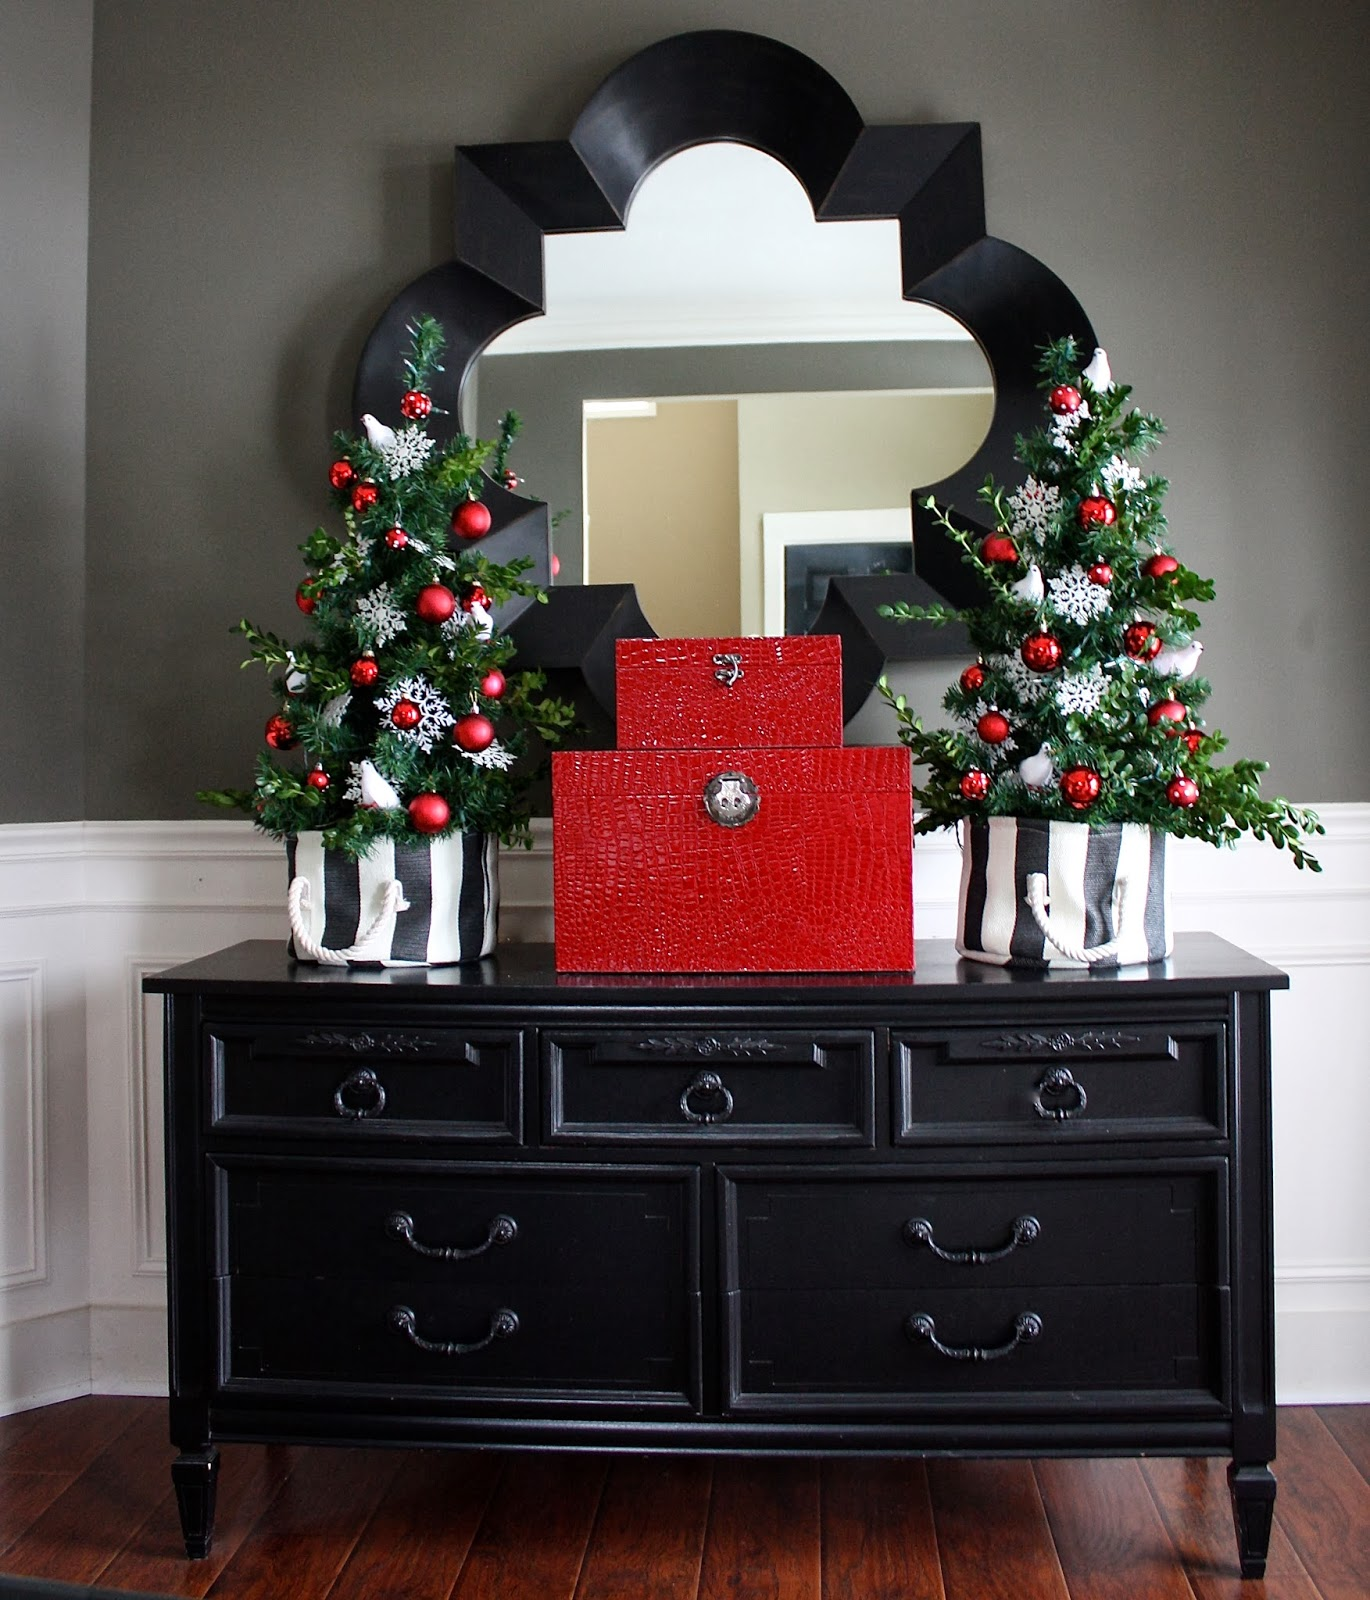 Holiday Home Decorating Ideas southern living christmas christmas and holiday home decorating ideas southern living photo gallery Holiday Home Tour 2013